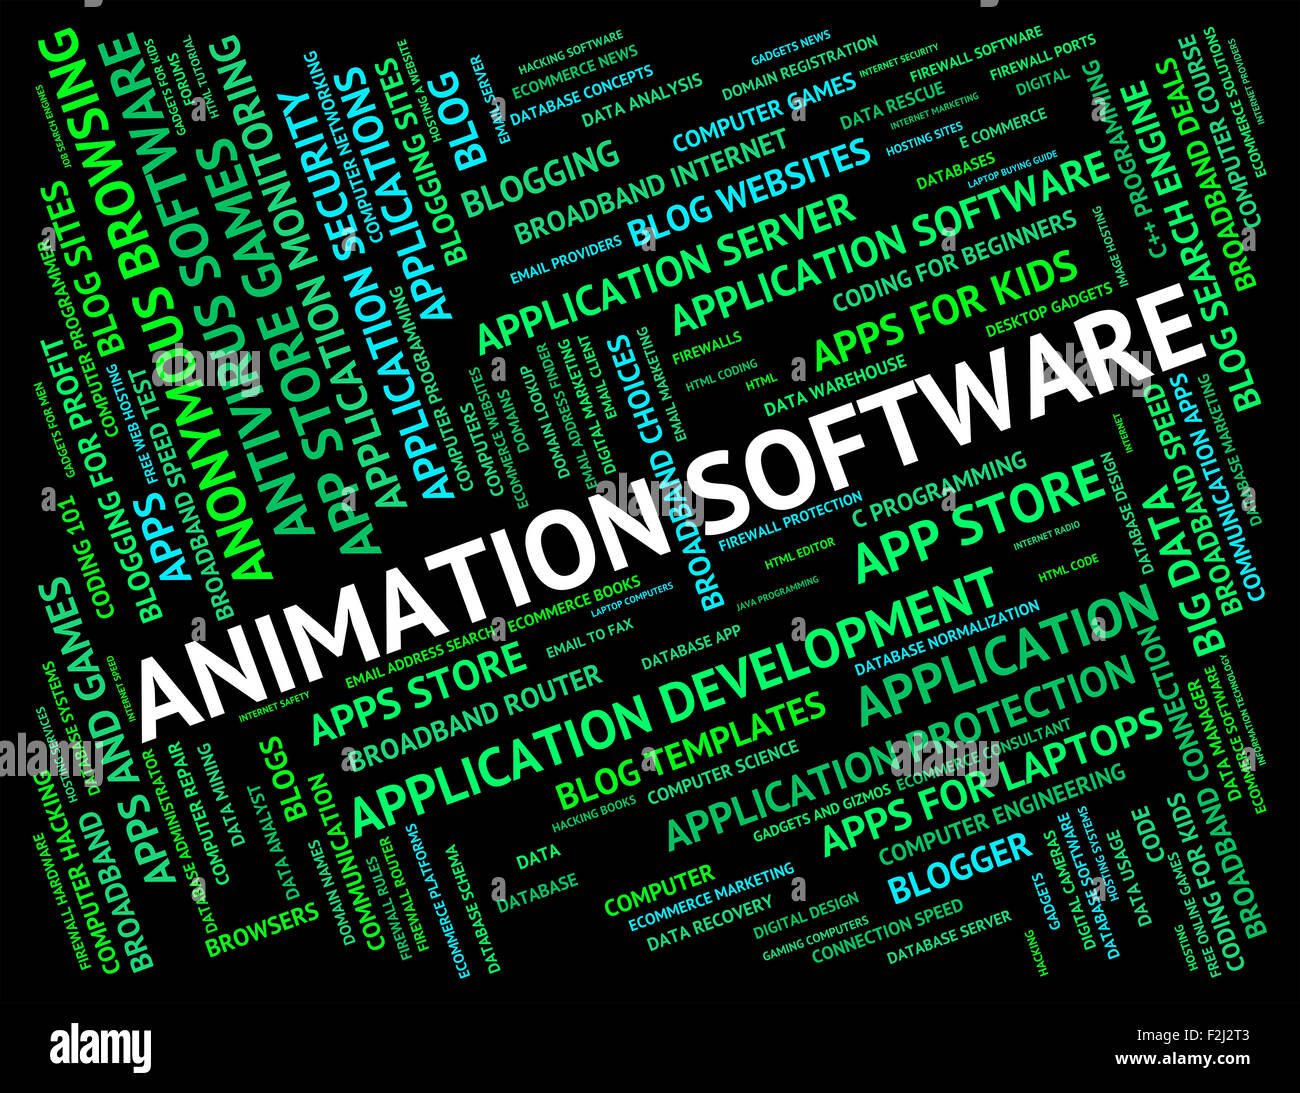 Animation Software Indicating Program Programs And Text